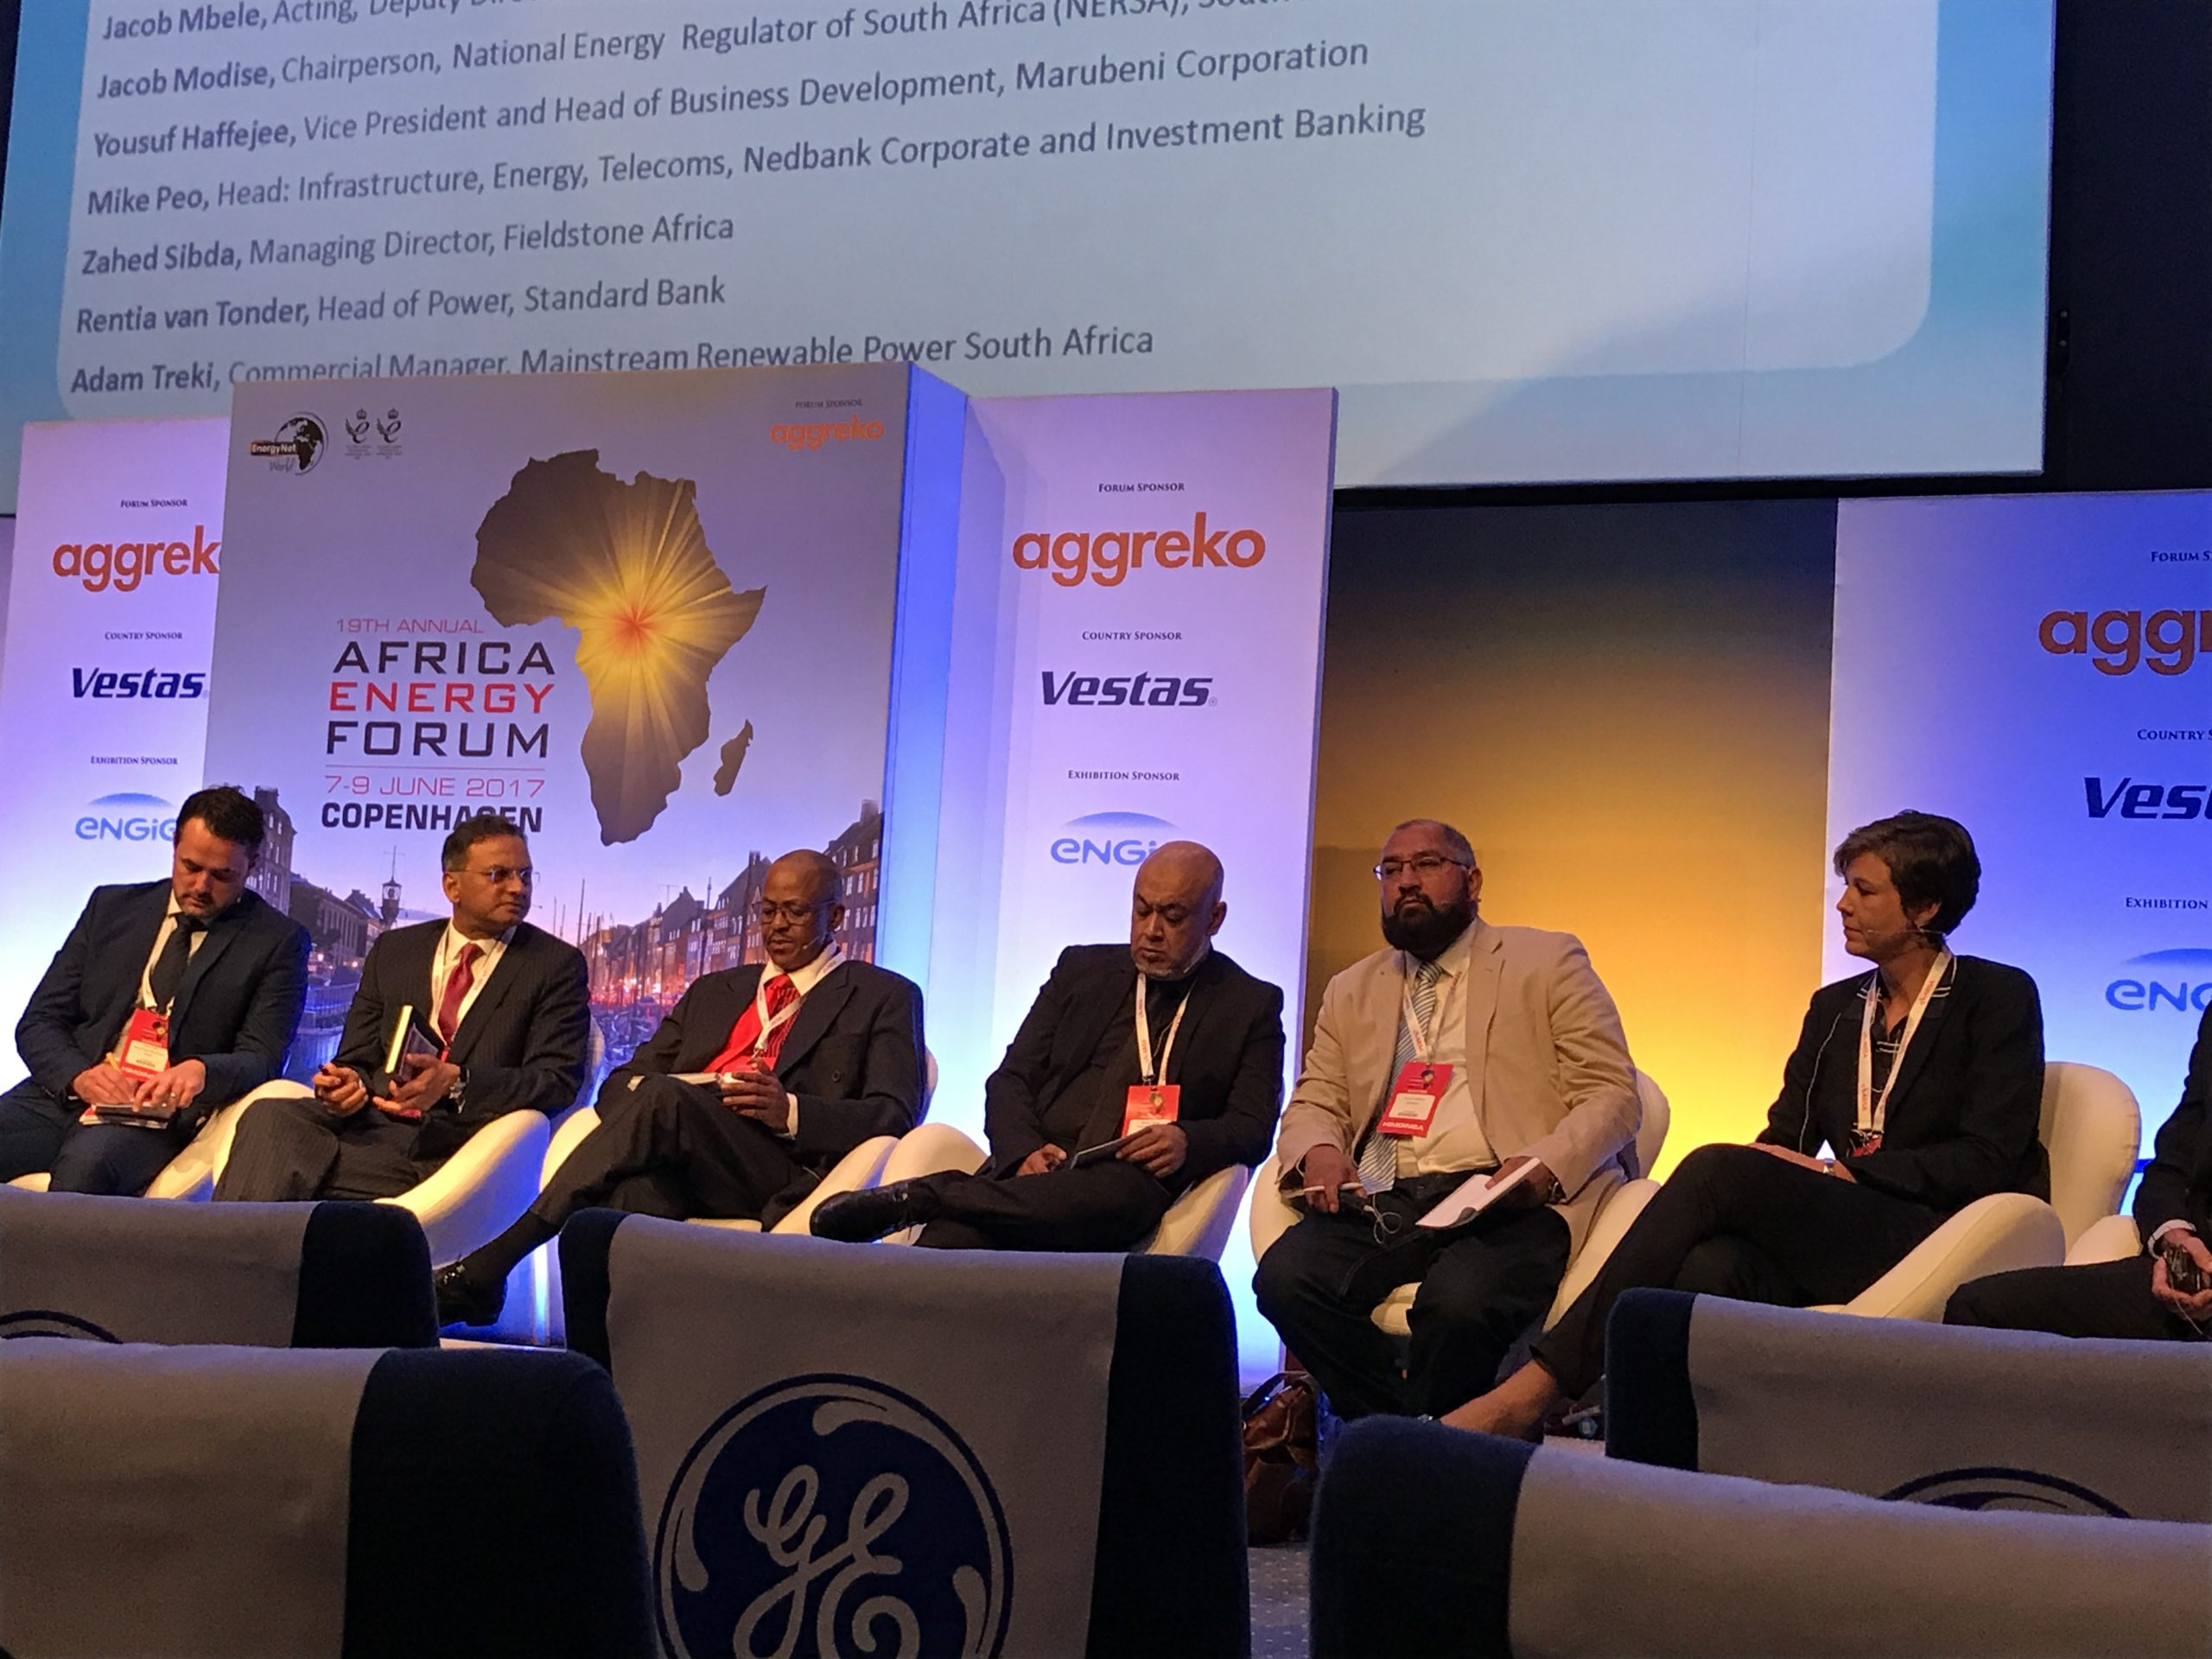 The panel discussion on South Africa's energy future at the Africa Energy Forum 2017 in Copenhagen, Denmark. Credit: Danielle Ola